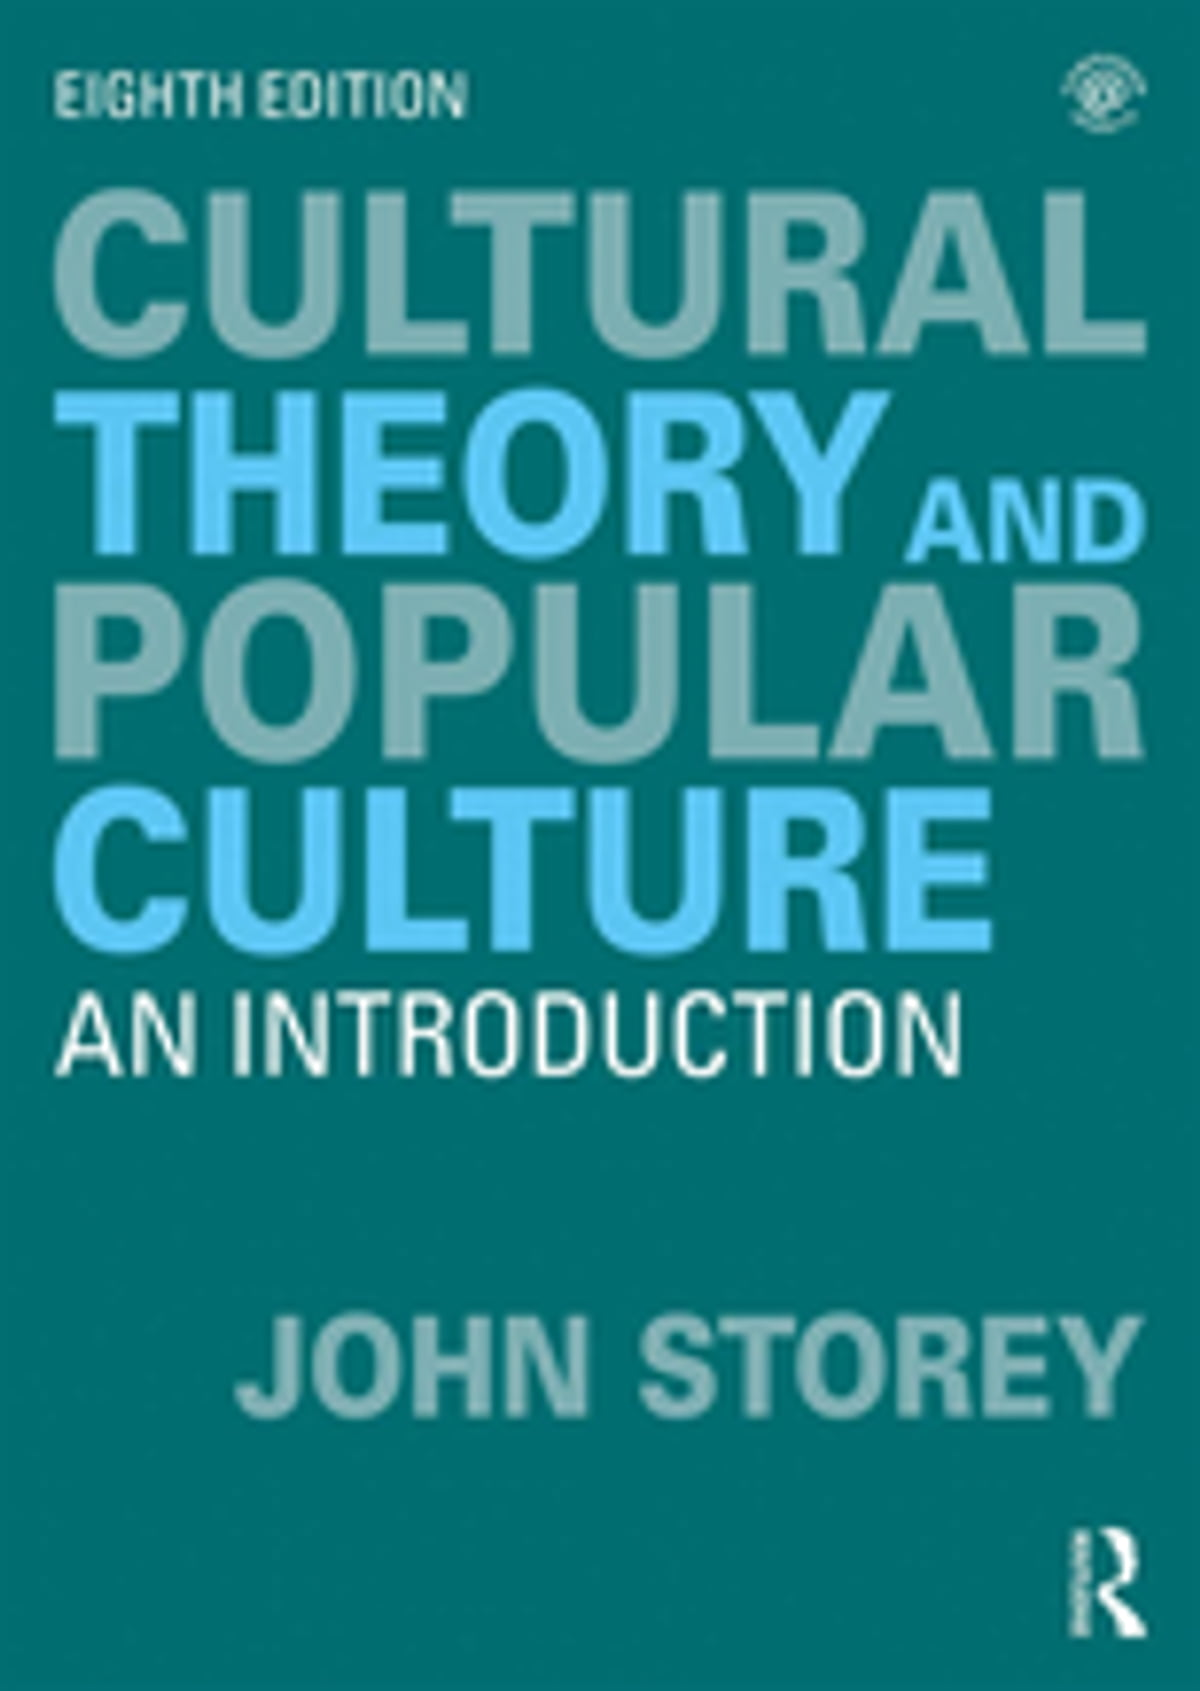 Cultural Theory And Popular Culture Ebook By John Storey 9781351851404 Rakuten Kobo United States